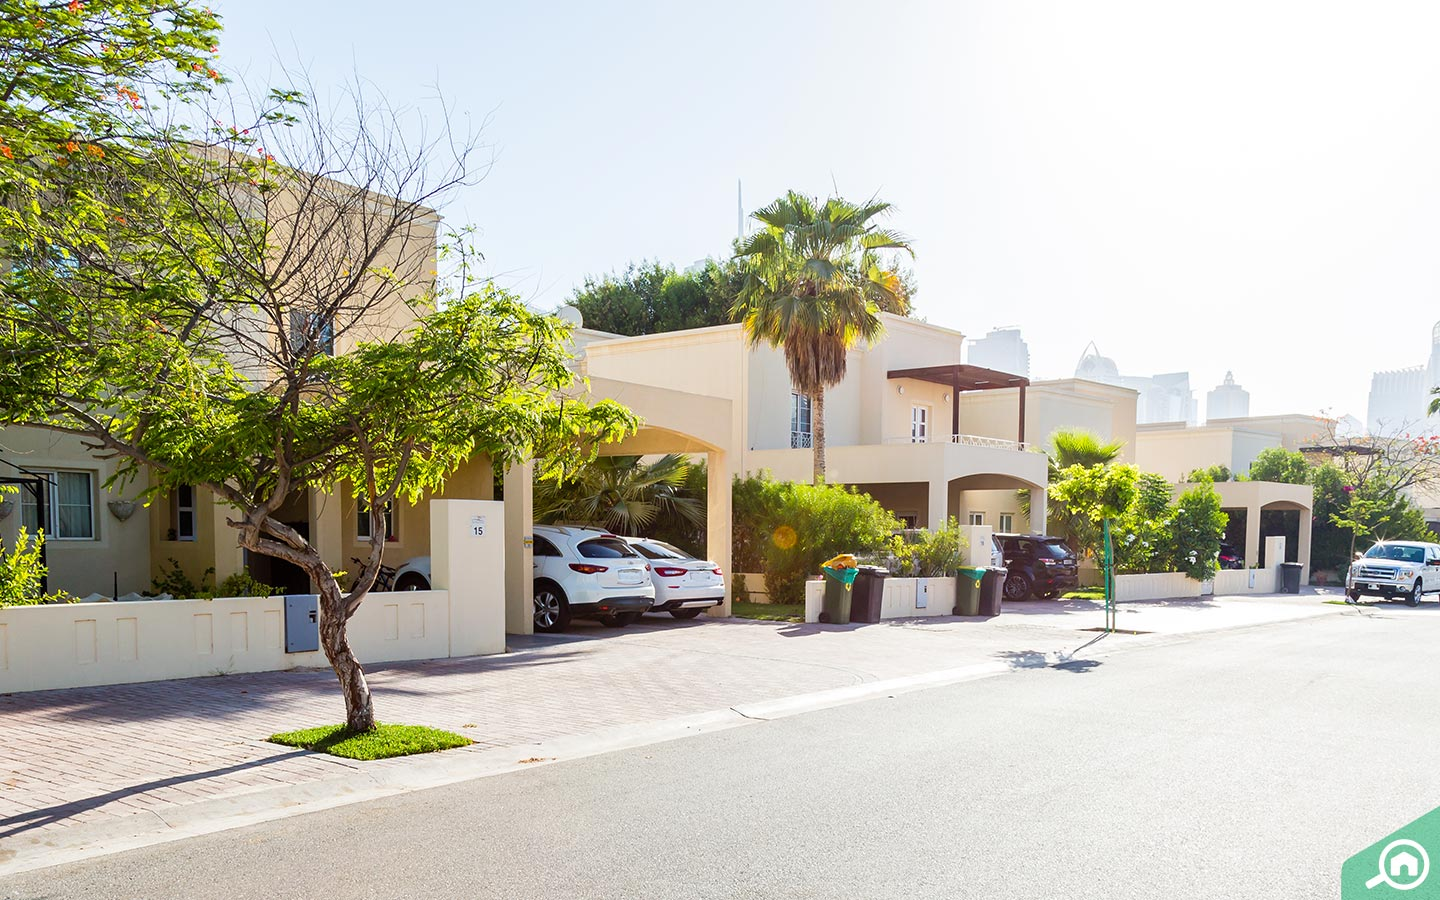 Street view of freehold villas in Meadows